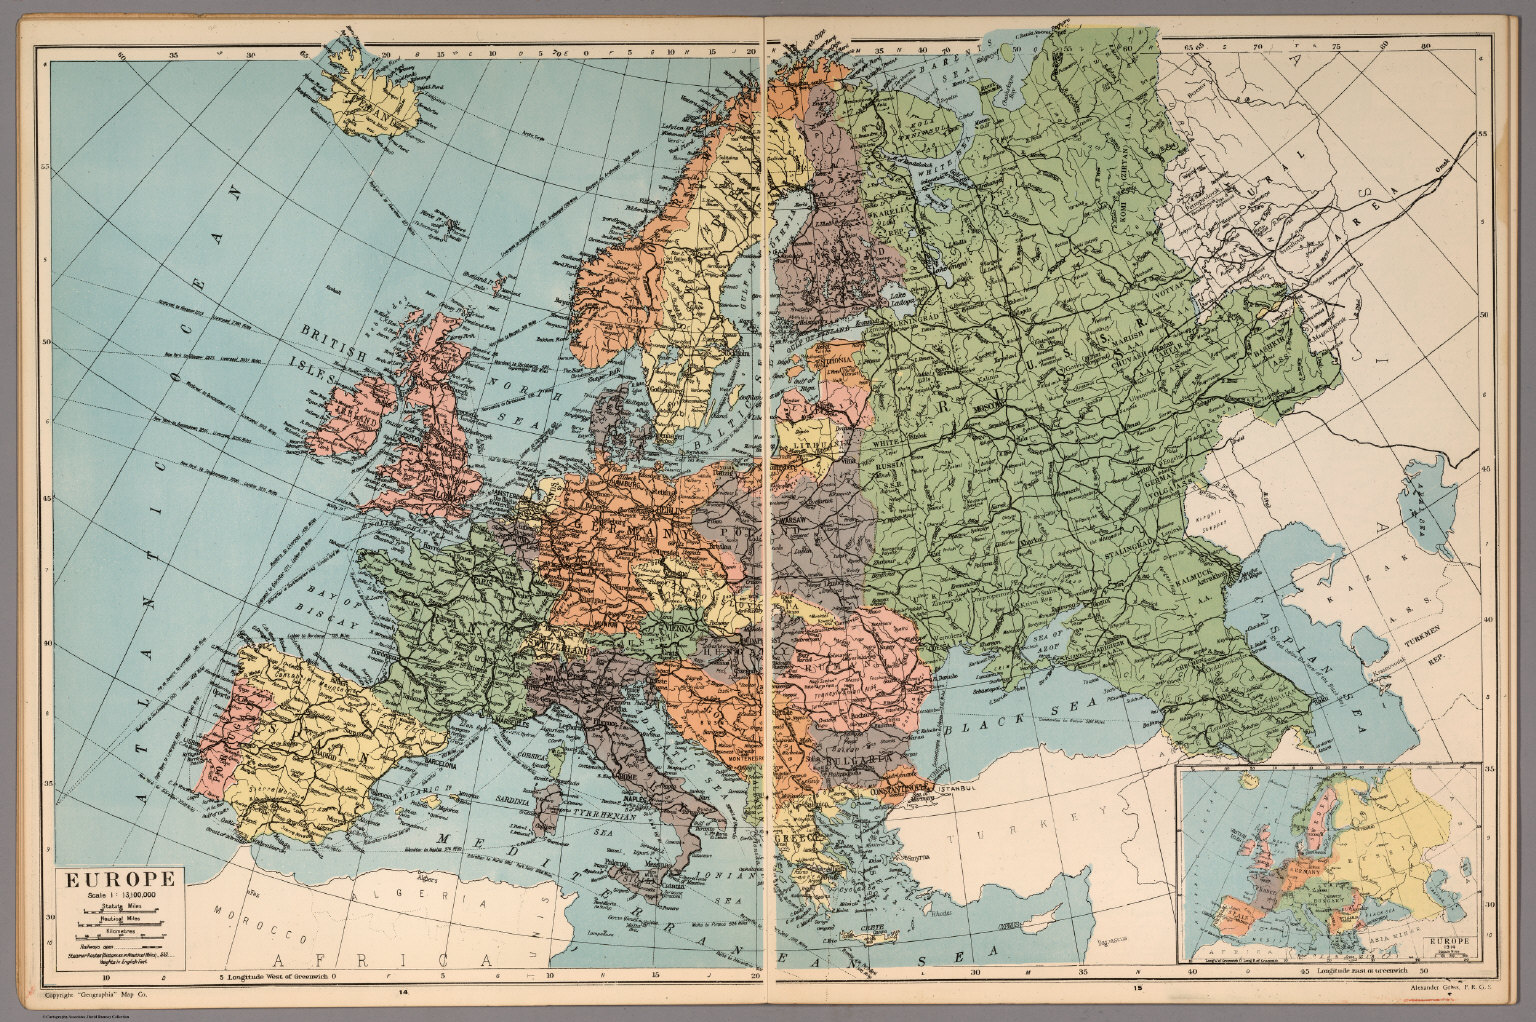 Europe David Rumsey Historical Map Collection – Europe Atlas Map